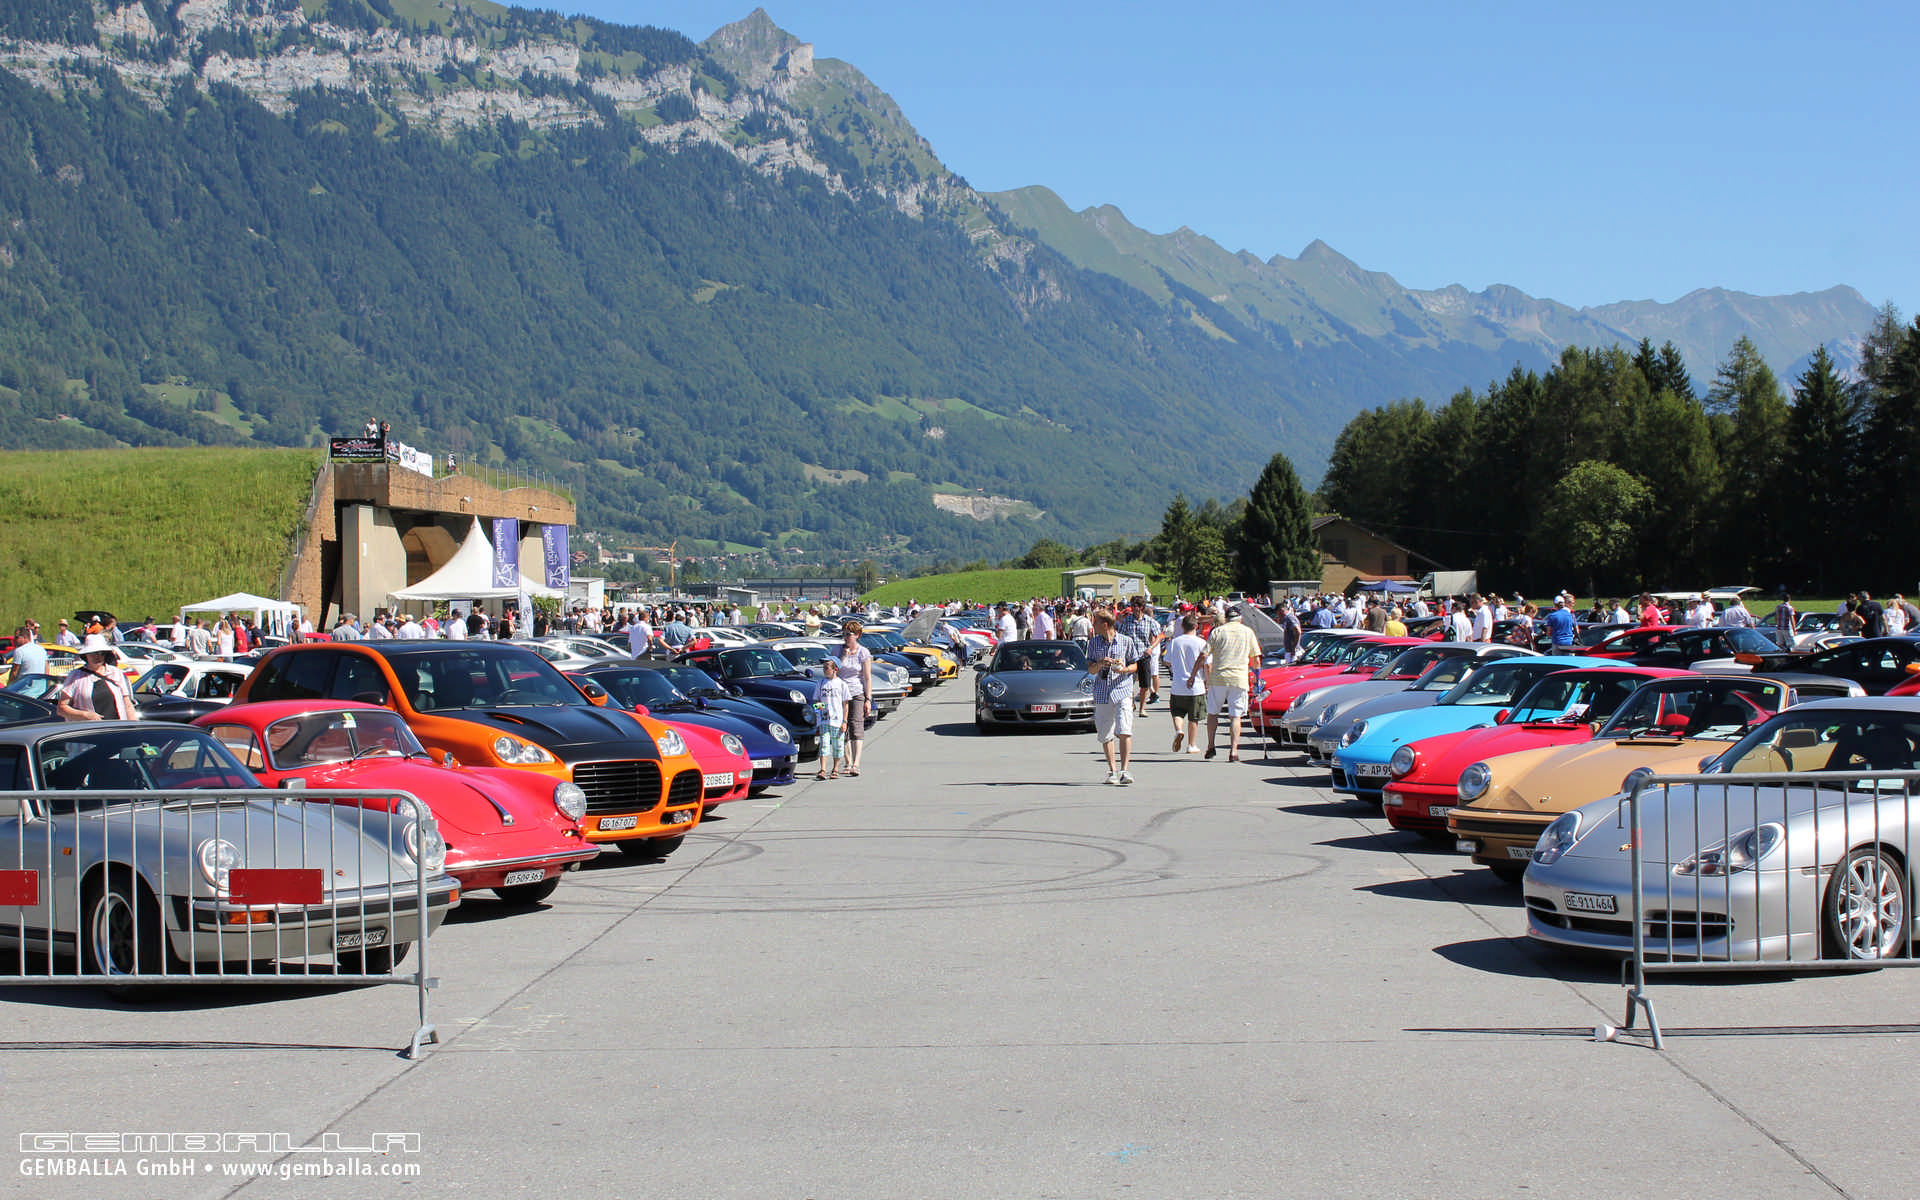 gemballa_gmbh_event_pt_interlaken_2012_007